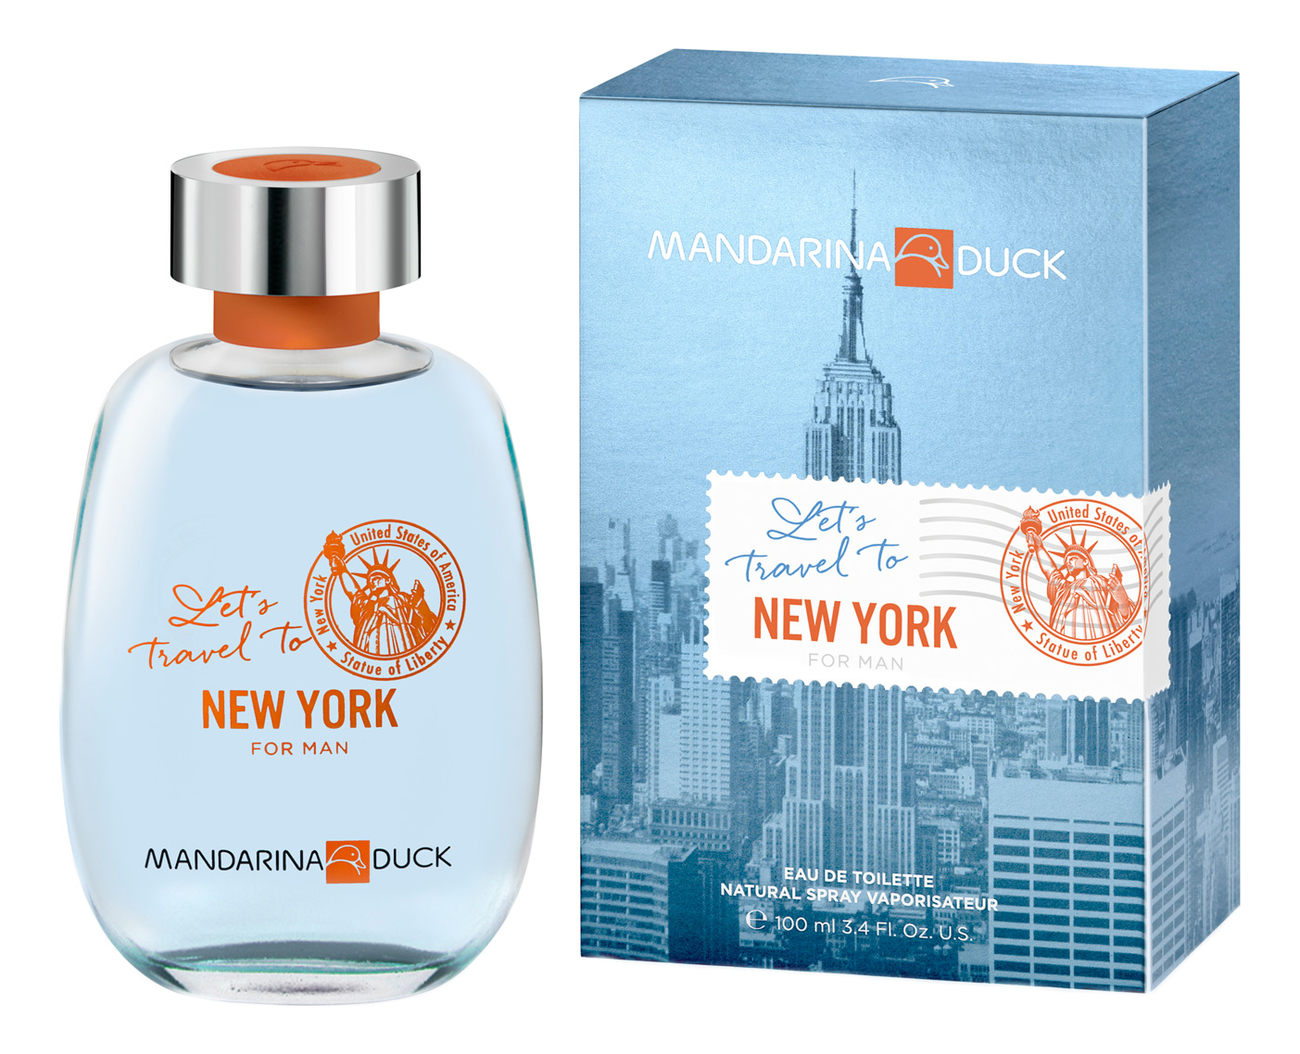 Let`s Travel To New York For Man: туалетная вода 100мл